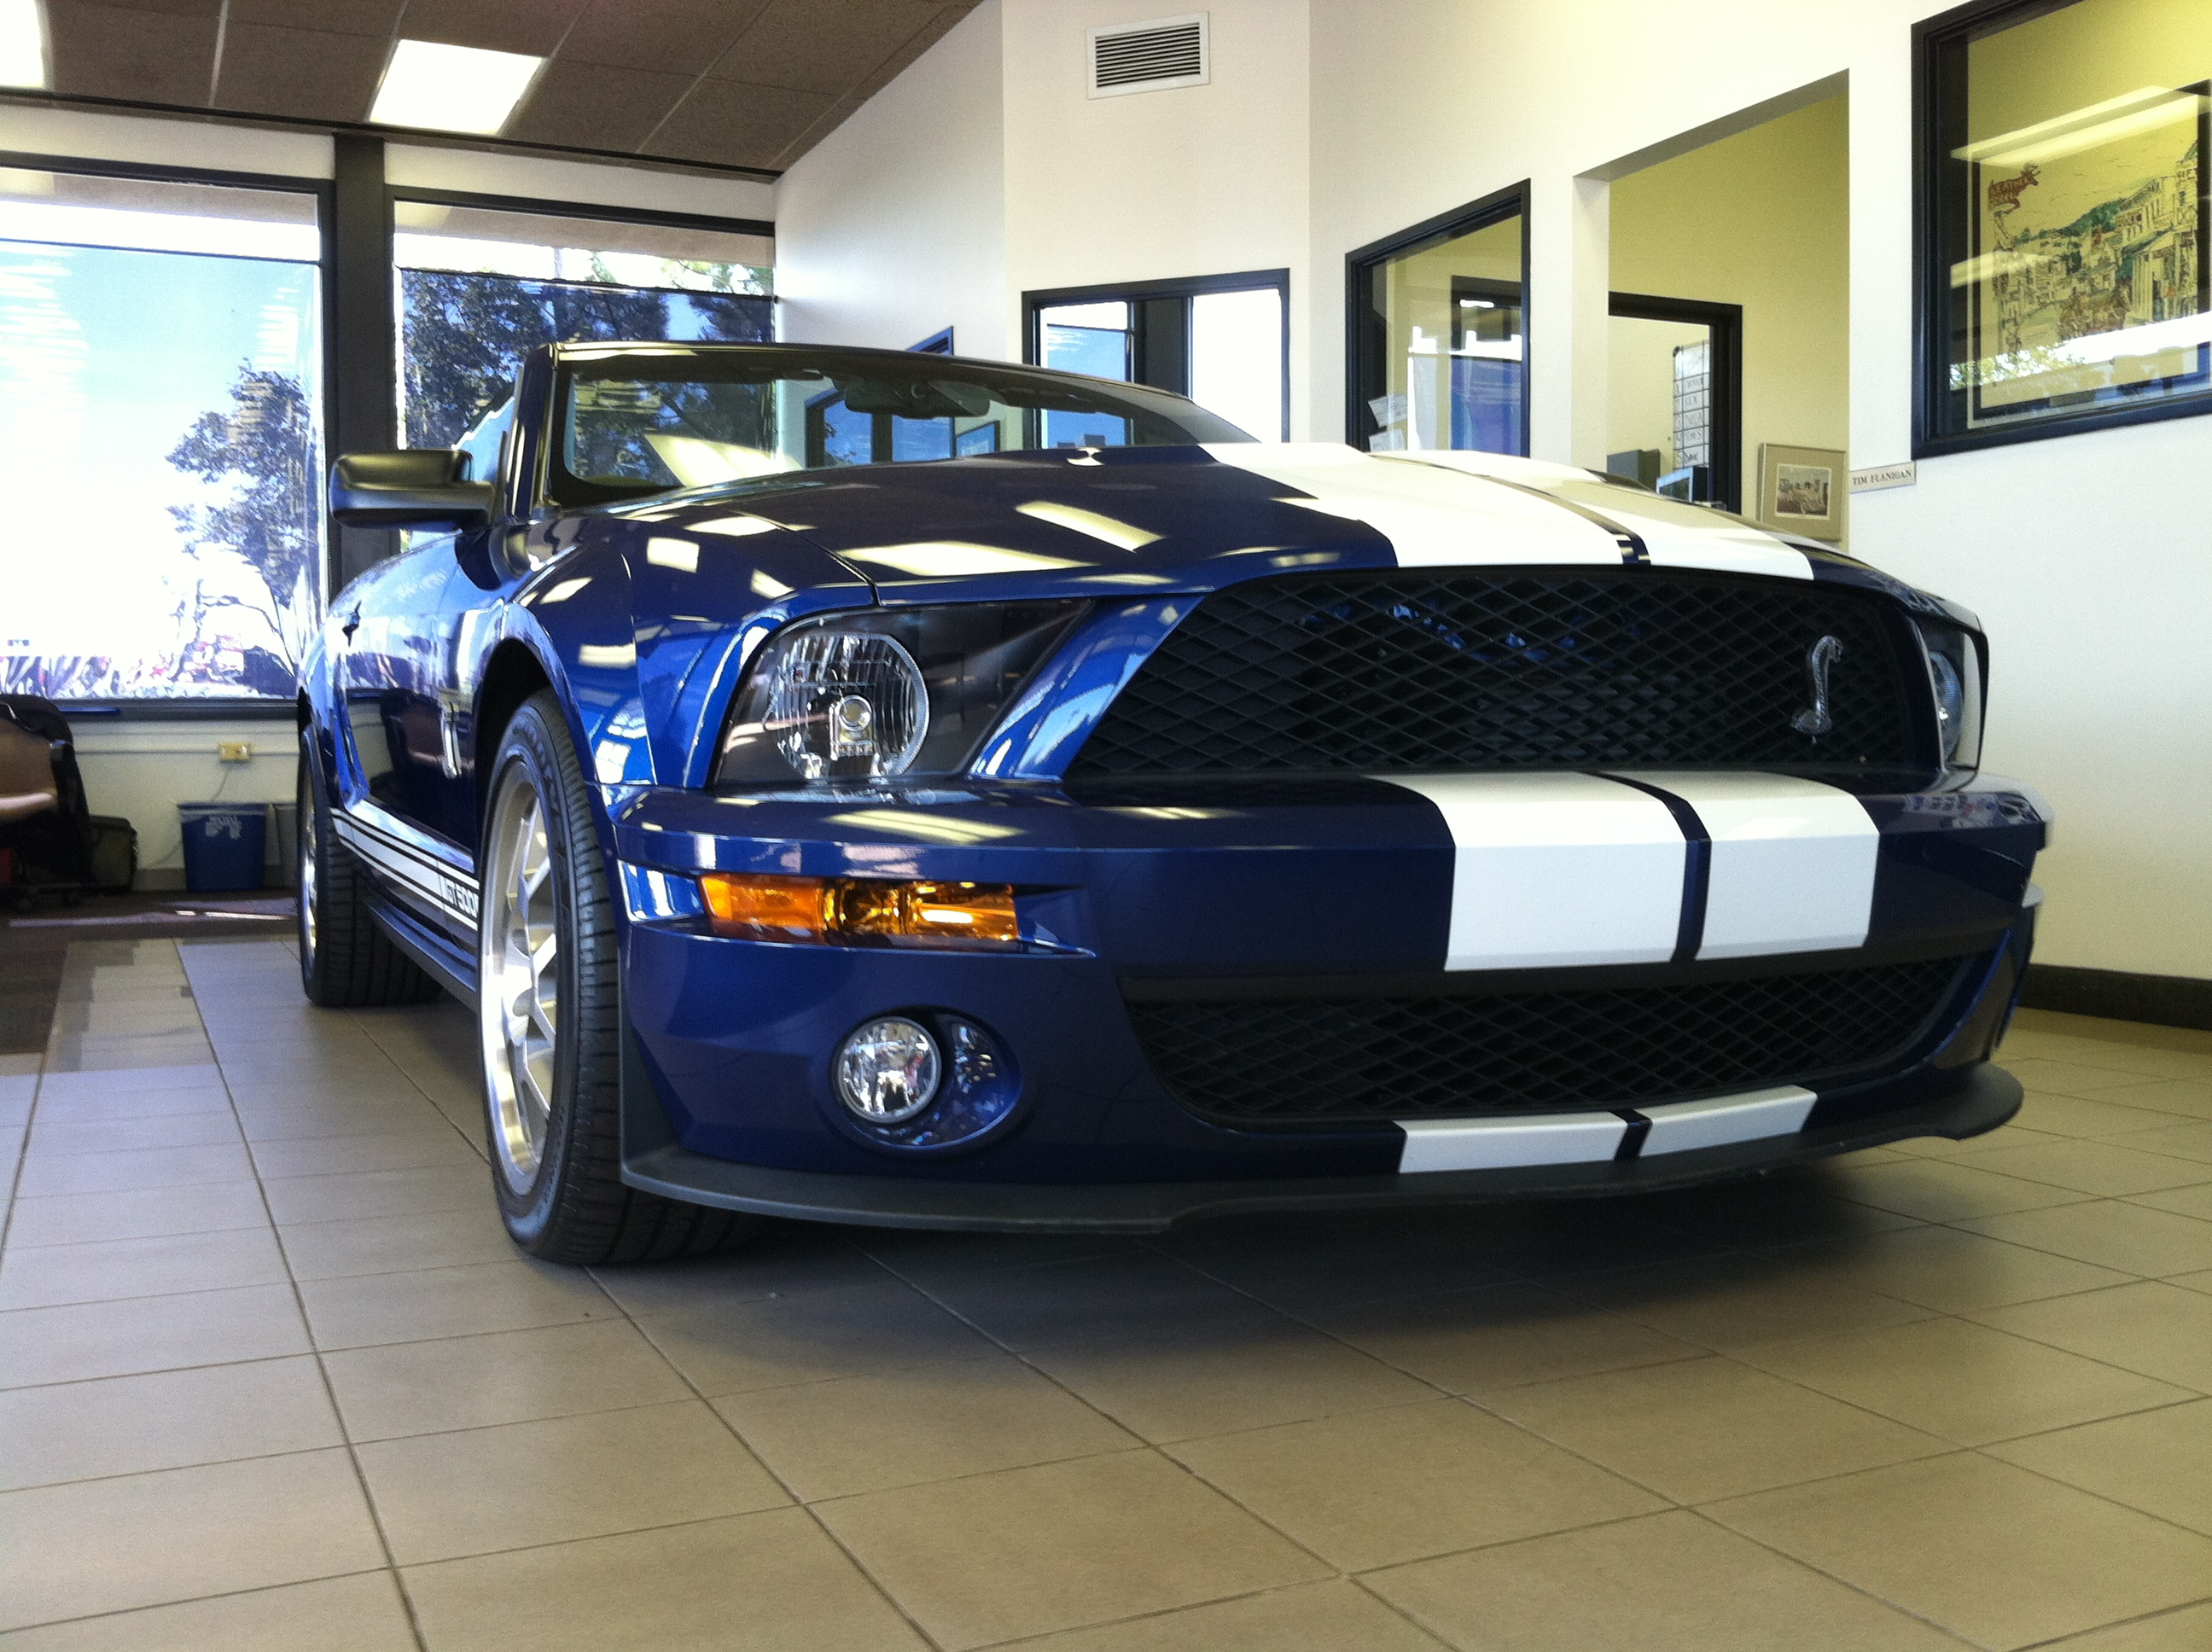 b567fcad North Brothers Chronicle: 2009 Shelby Cobra GT500 - North Brothers Ford